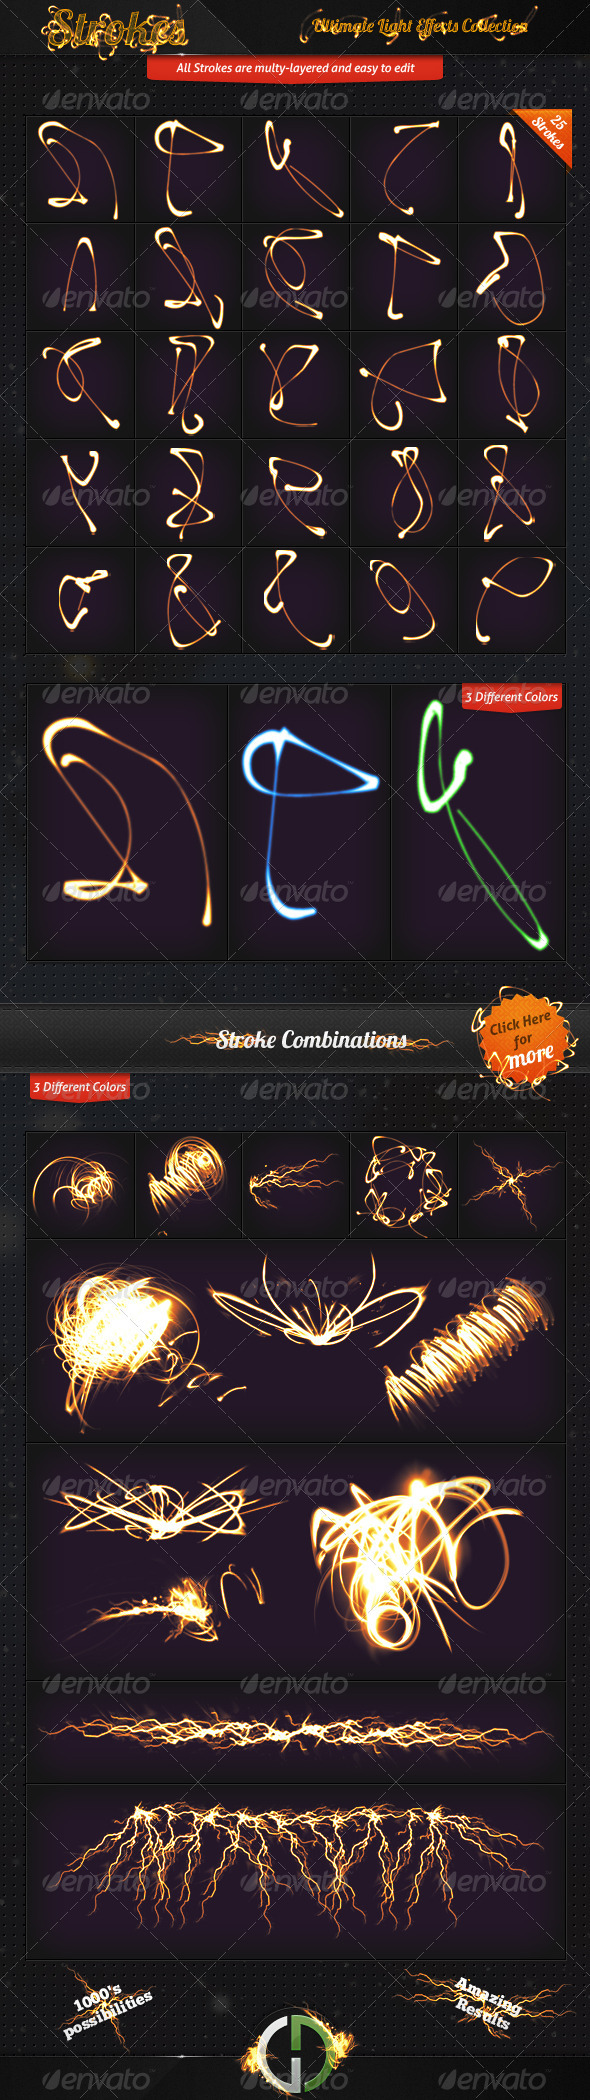 GraphicRiver Ultimate Light Effects Collection Strokes 1912758